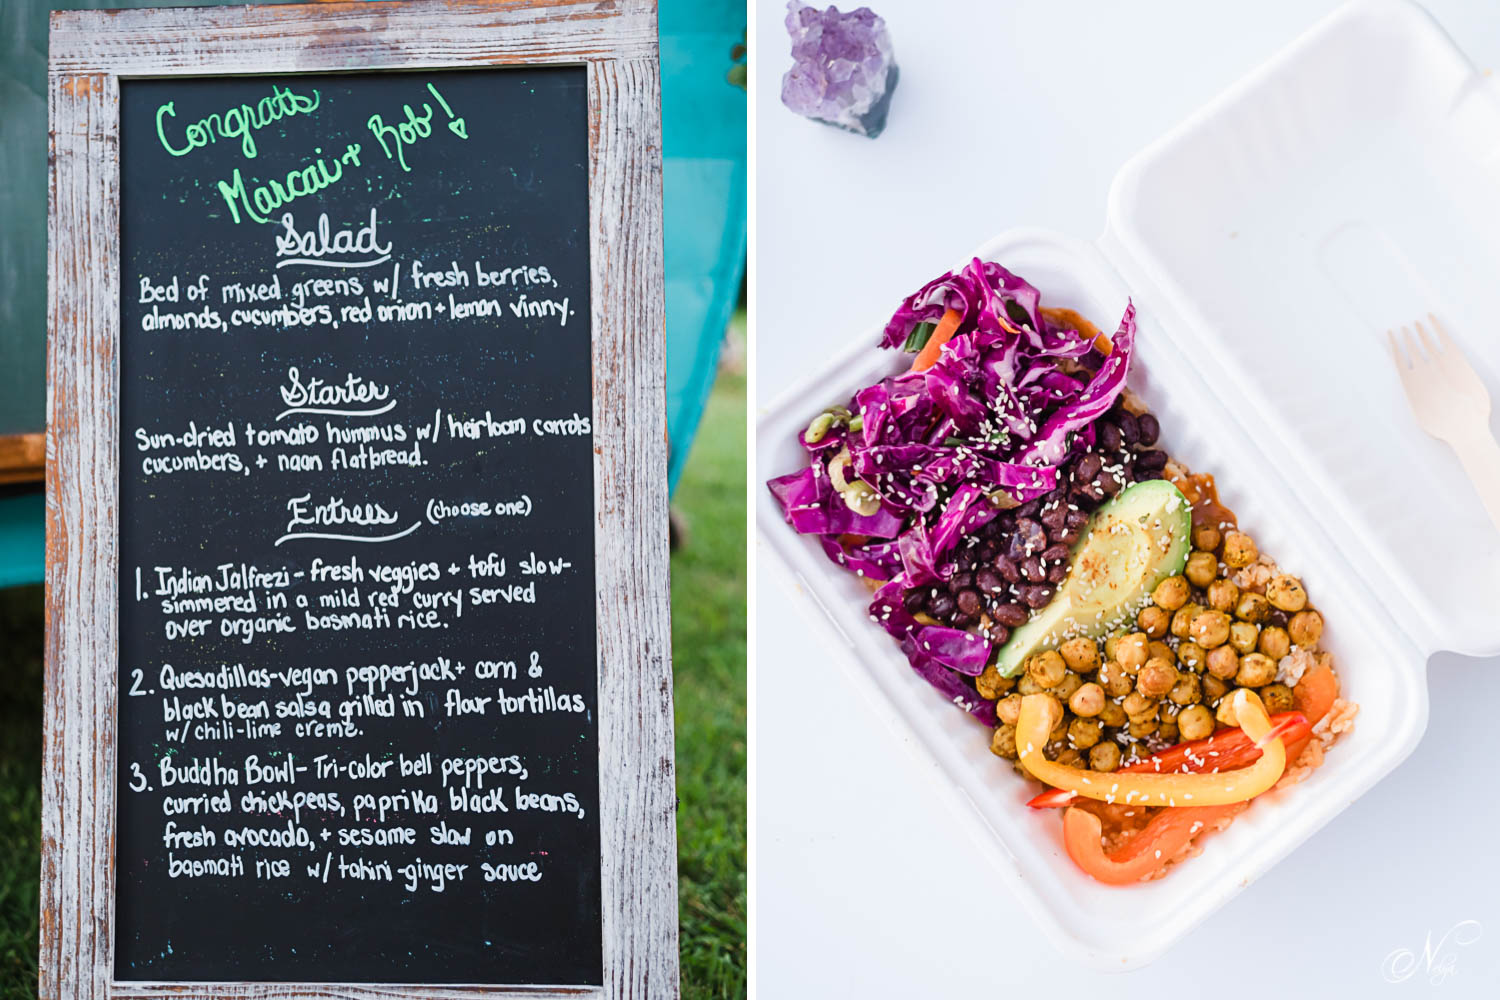 vegan chalkboard menu. And vegan budah bowl with red cabbage, chickpeas, black beans, avocado, and bell peppers.